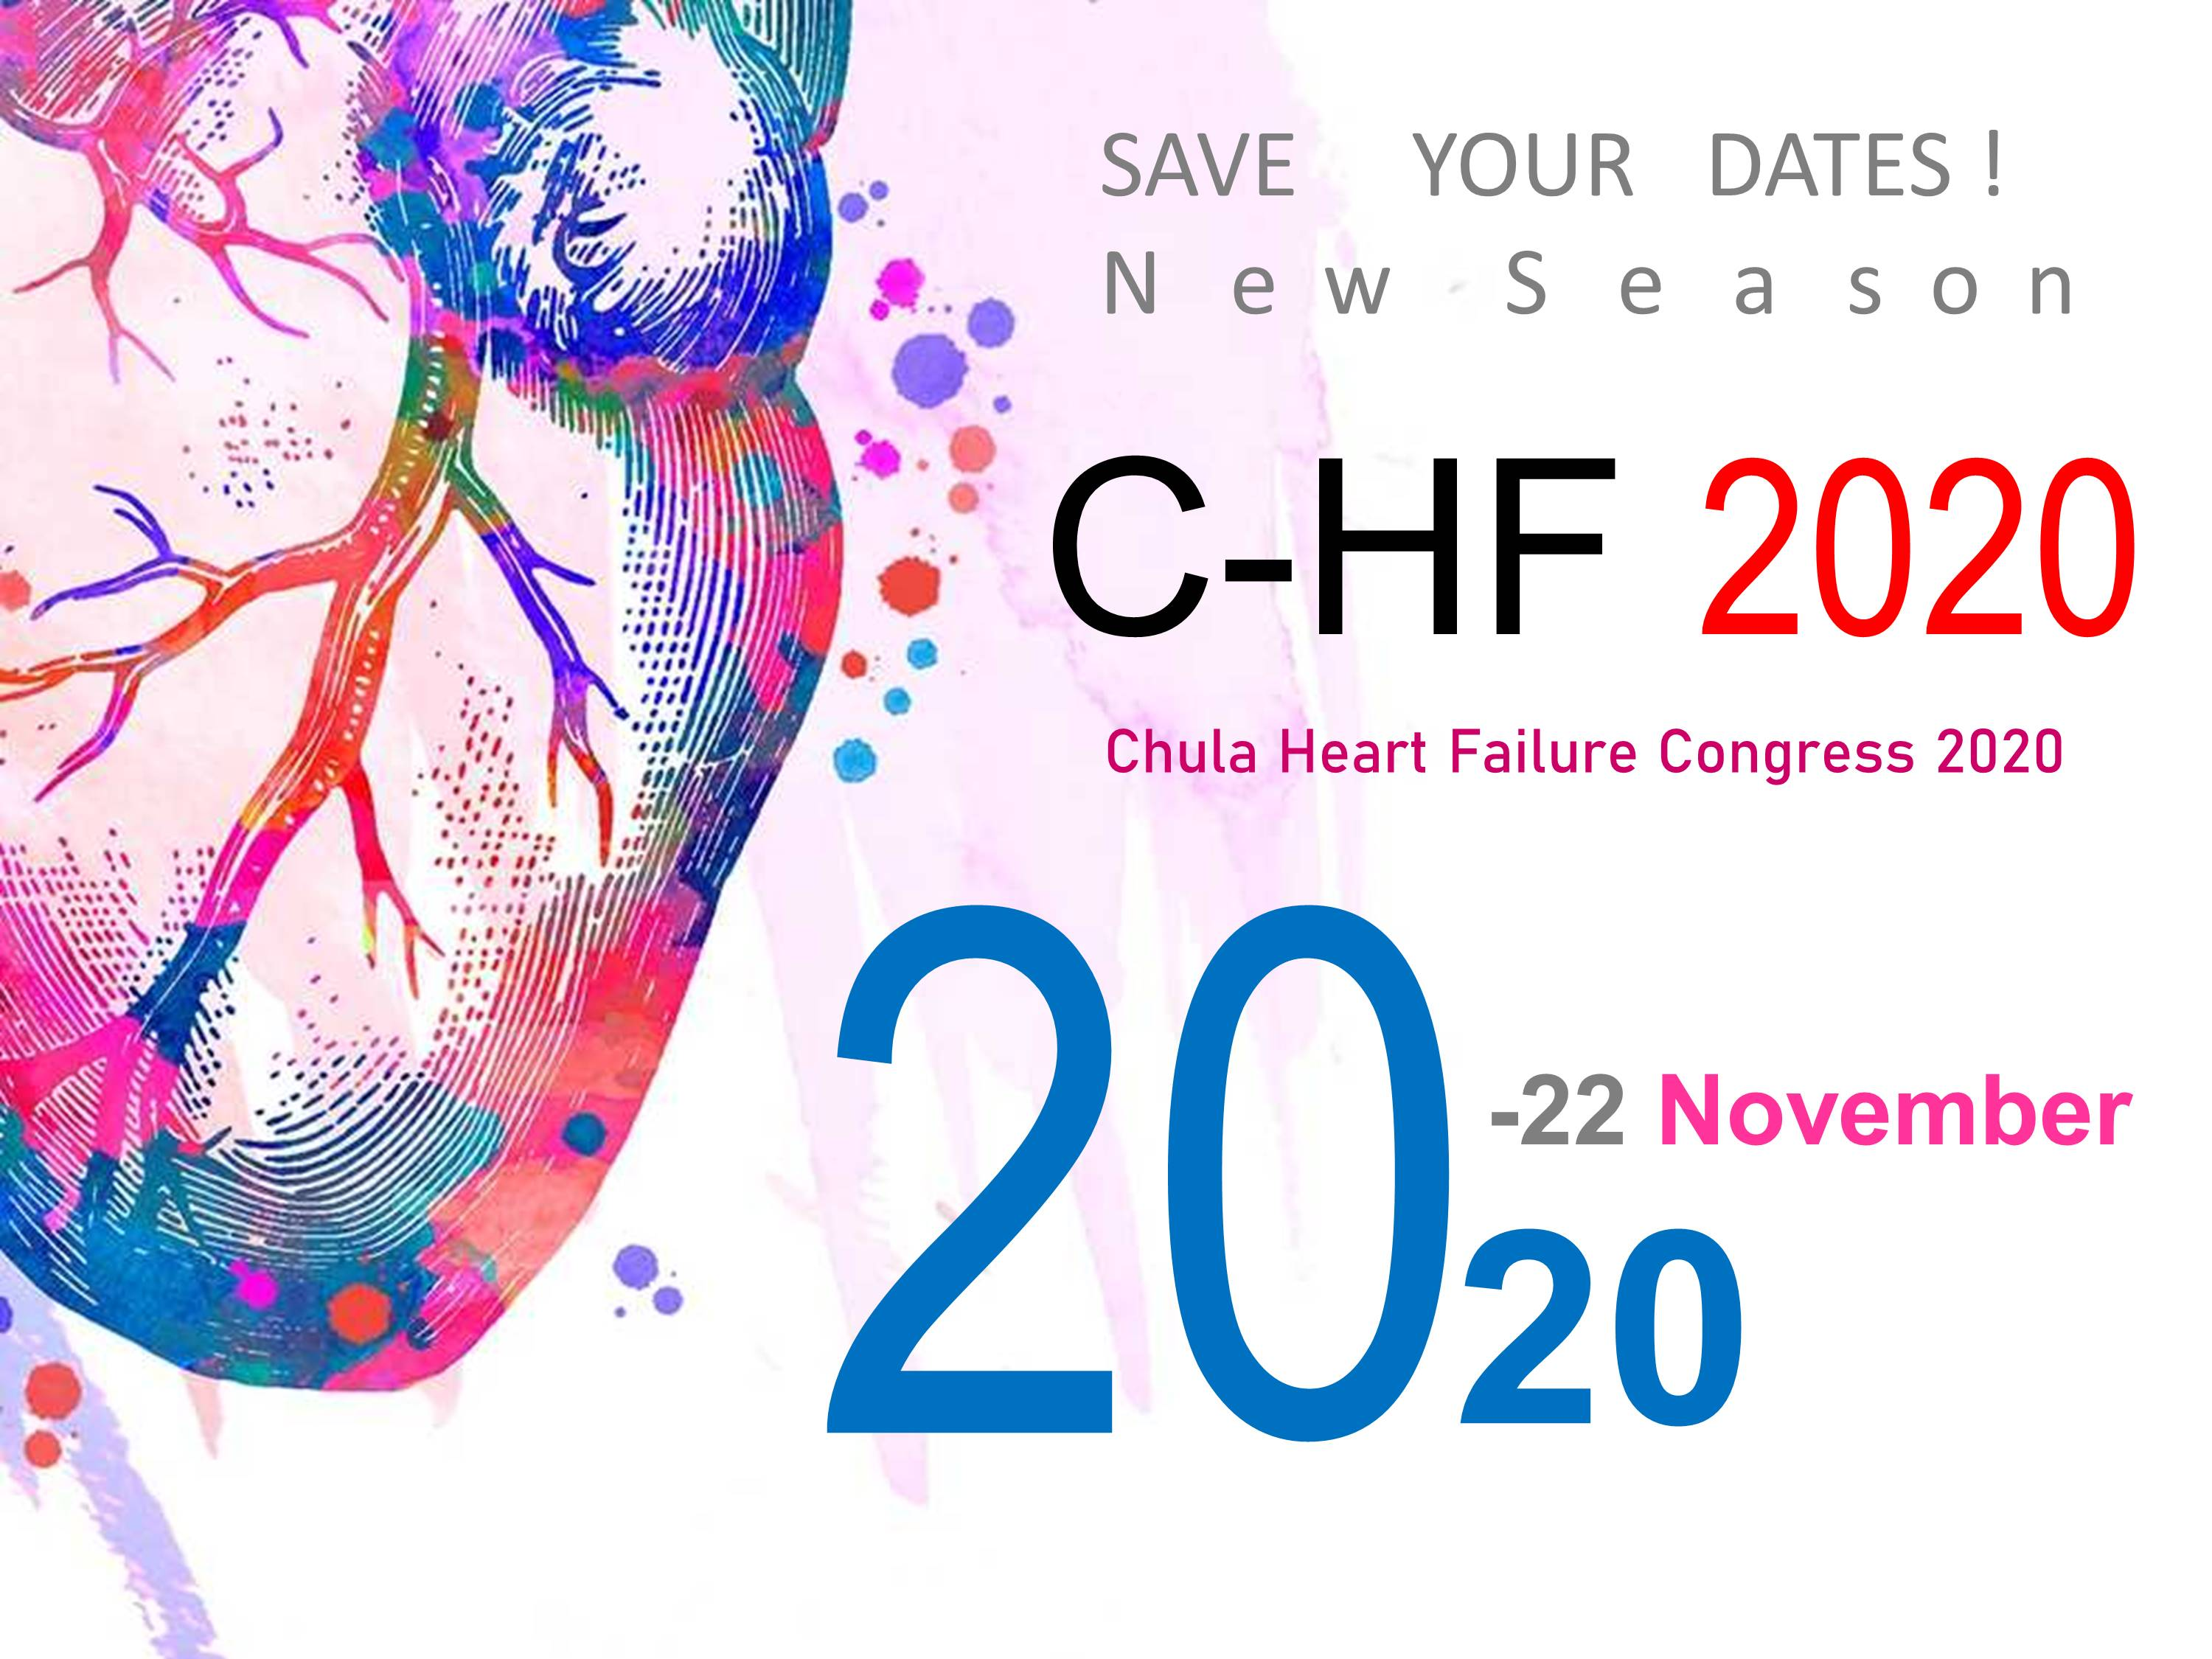 http://www.chulacardiaccenter.org/images/CHF2020/chf%202020.jpg